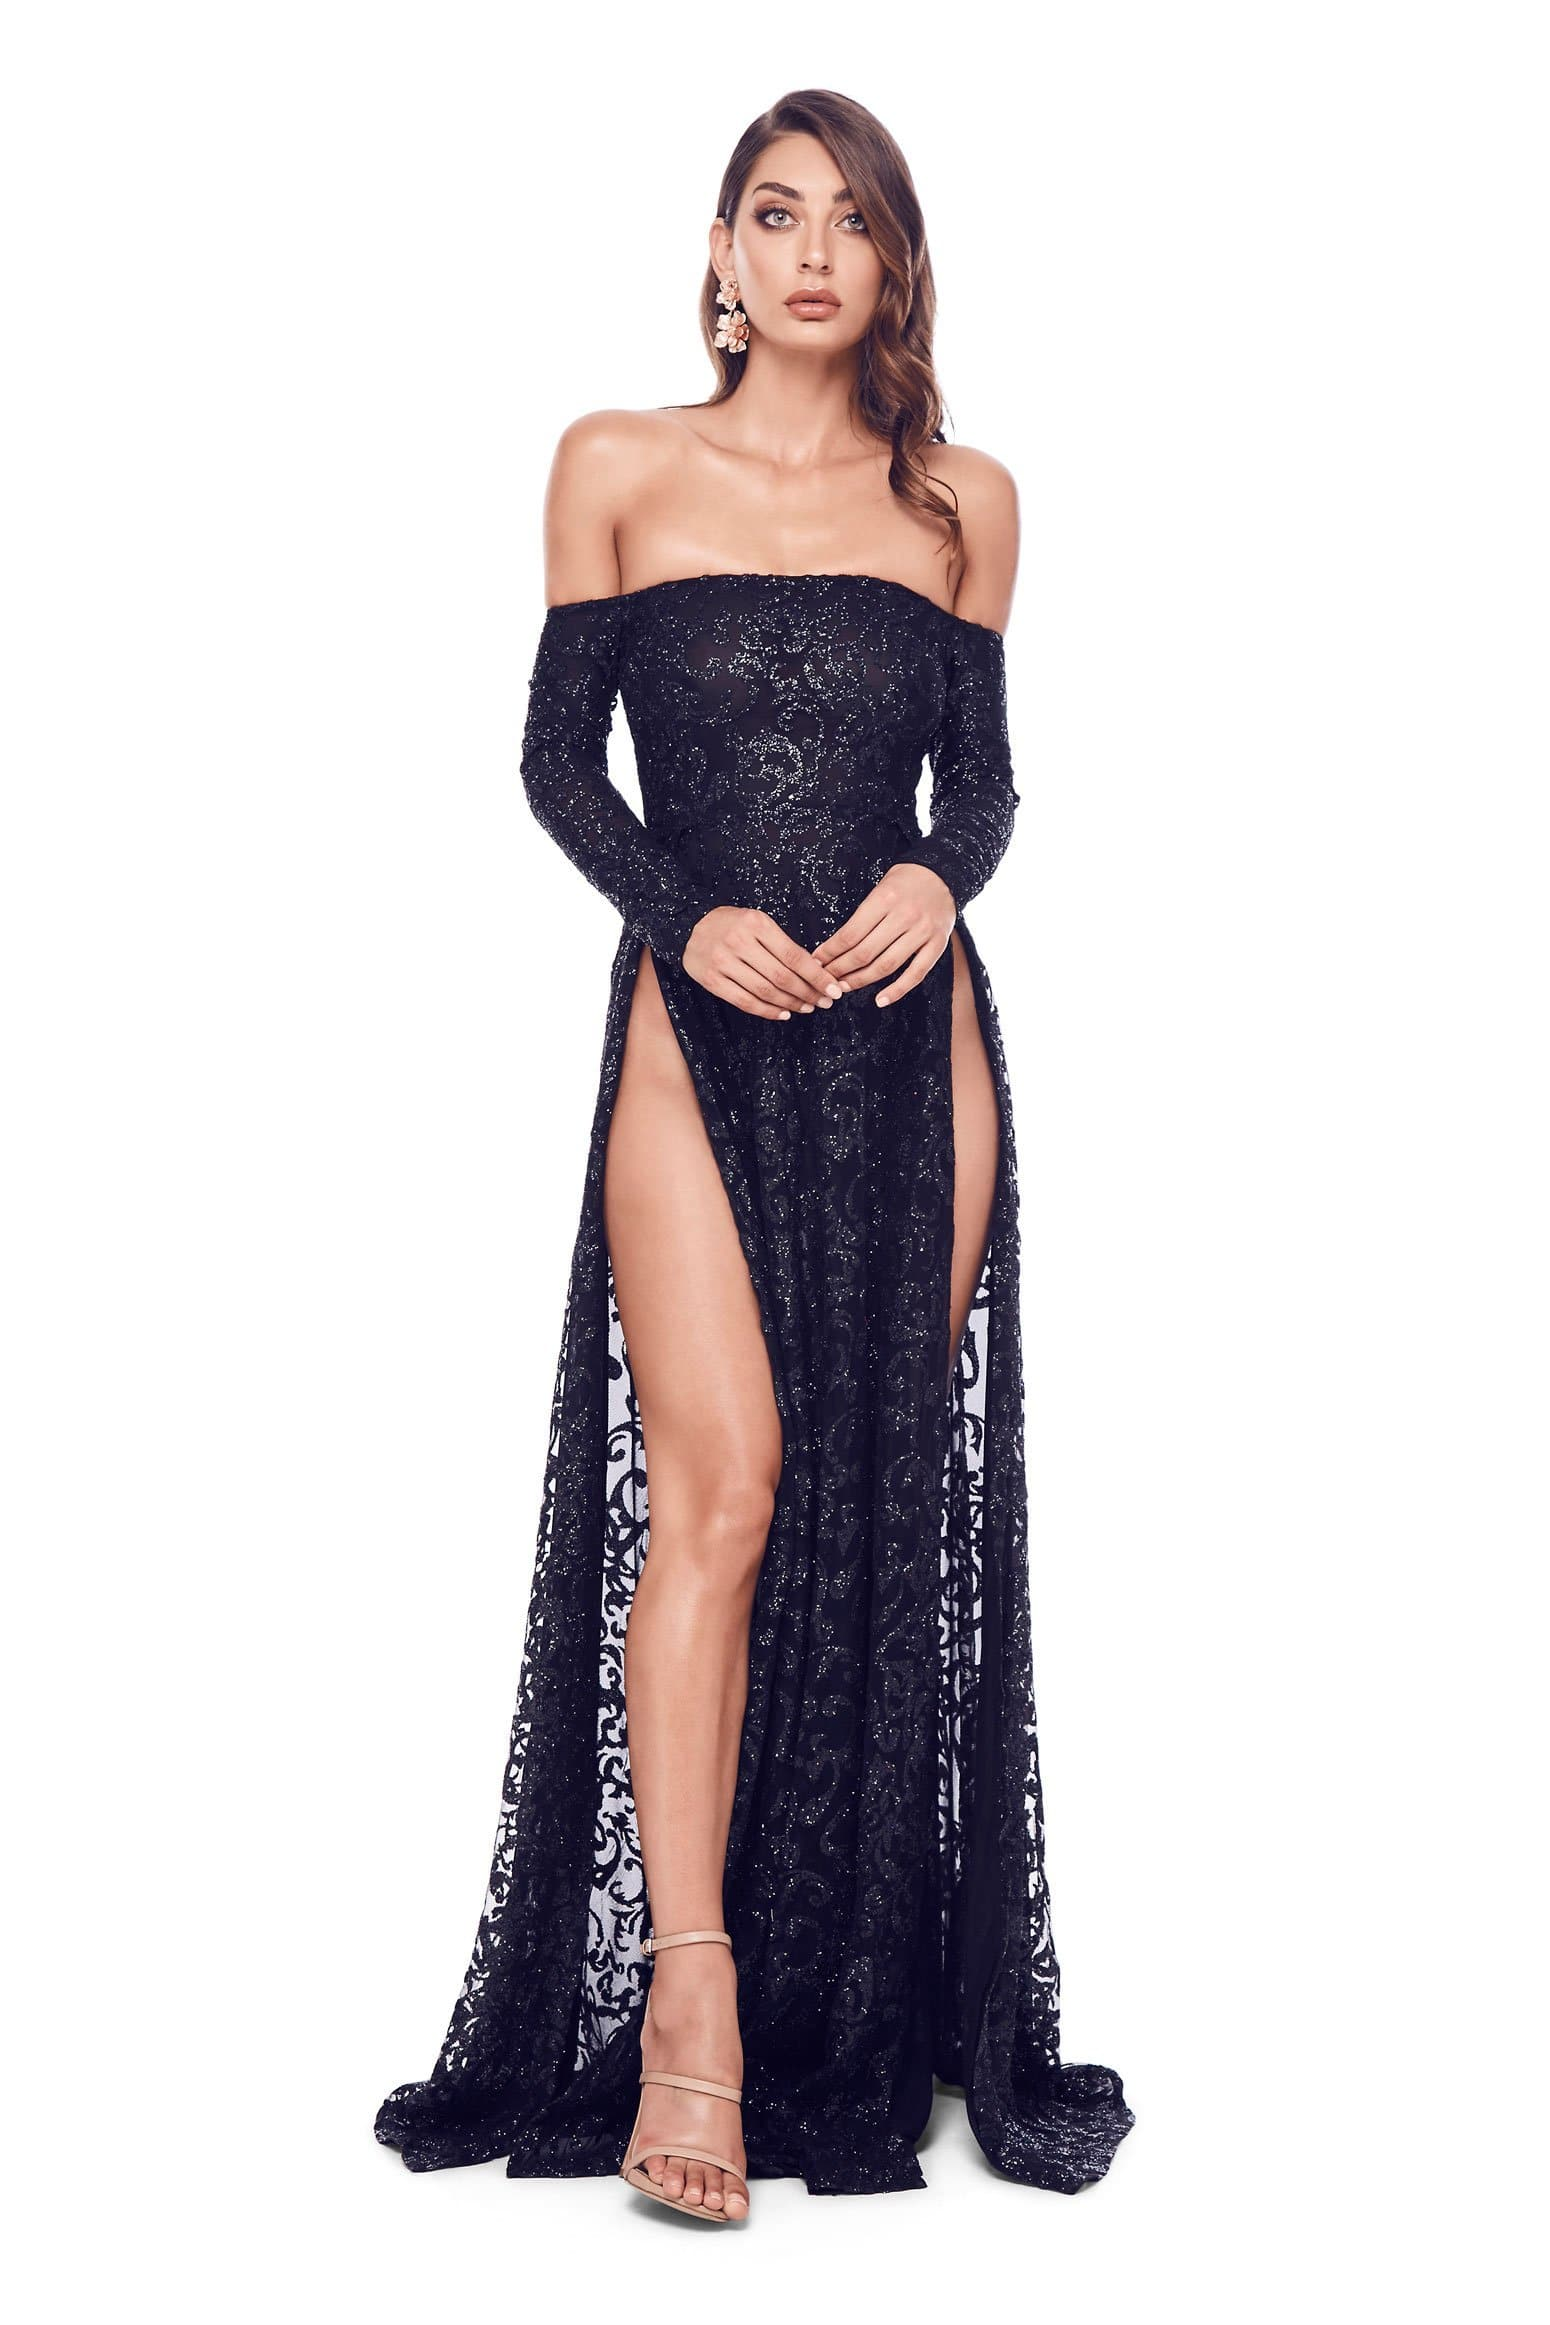 Flame Gown - Black Glitter Sheer Off Shoulder Long Sleeves Slits Dress